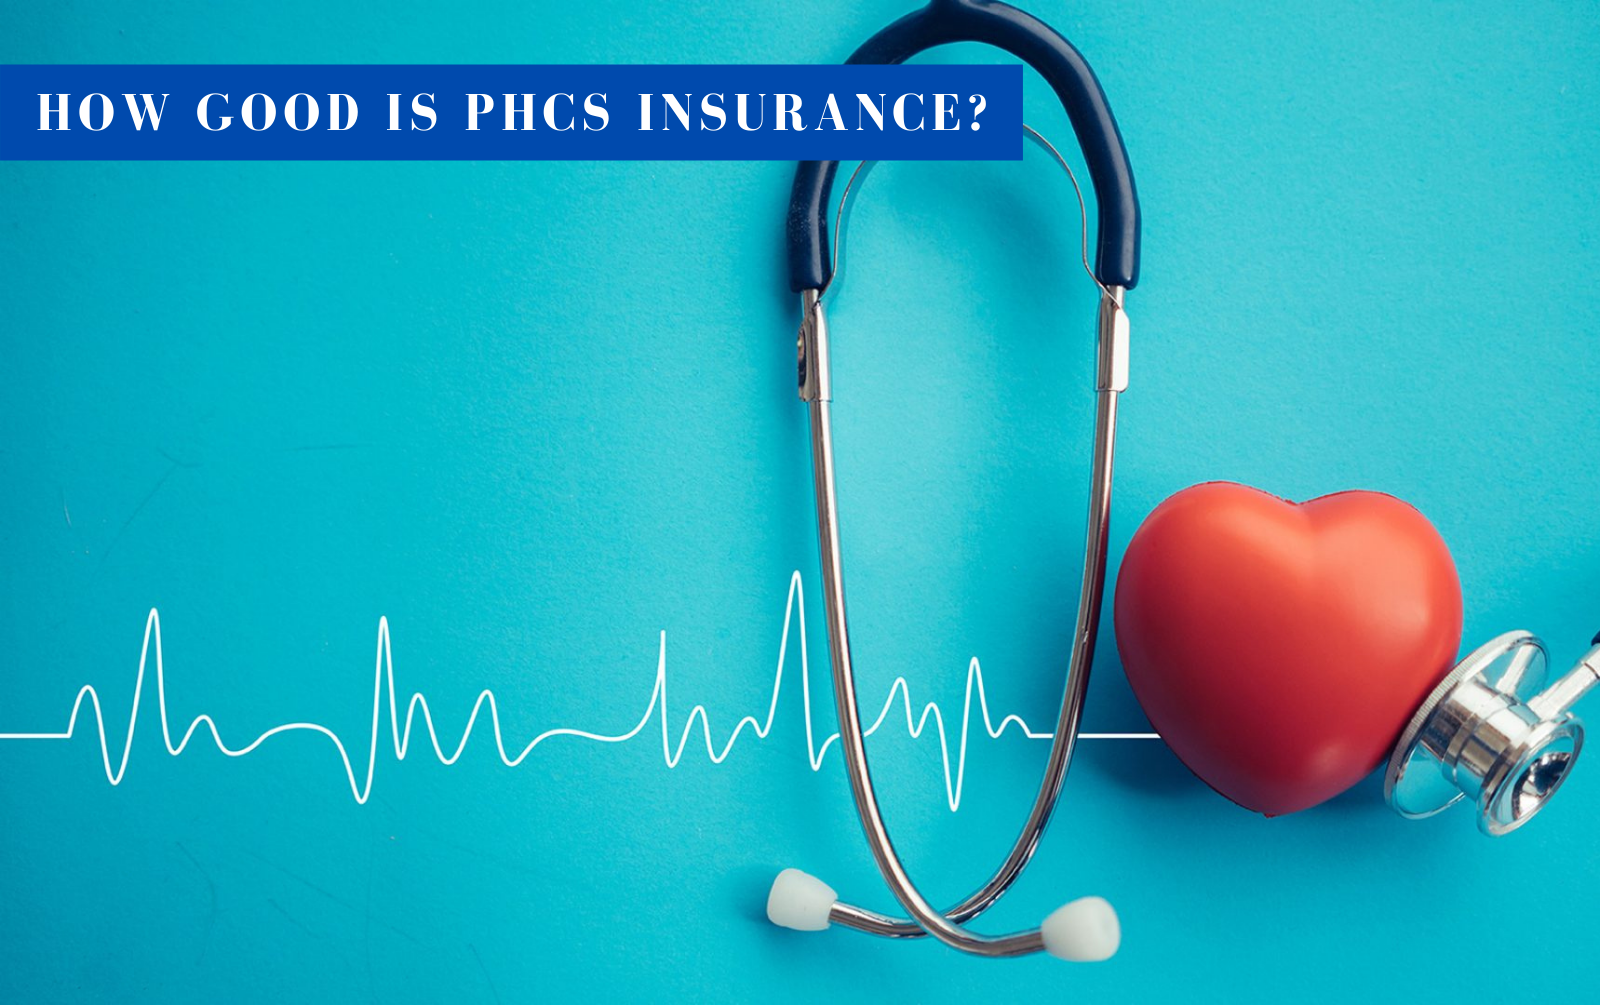 how good is phcs insurance